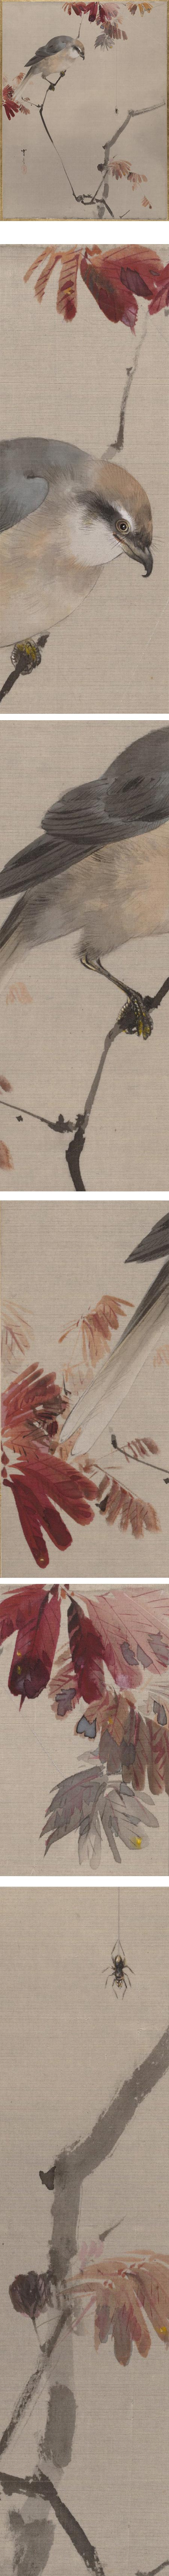 Bird on Branch Watching Spider, Watanabe Seitei, ink and color on silk